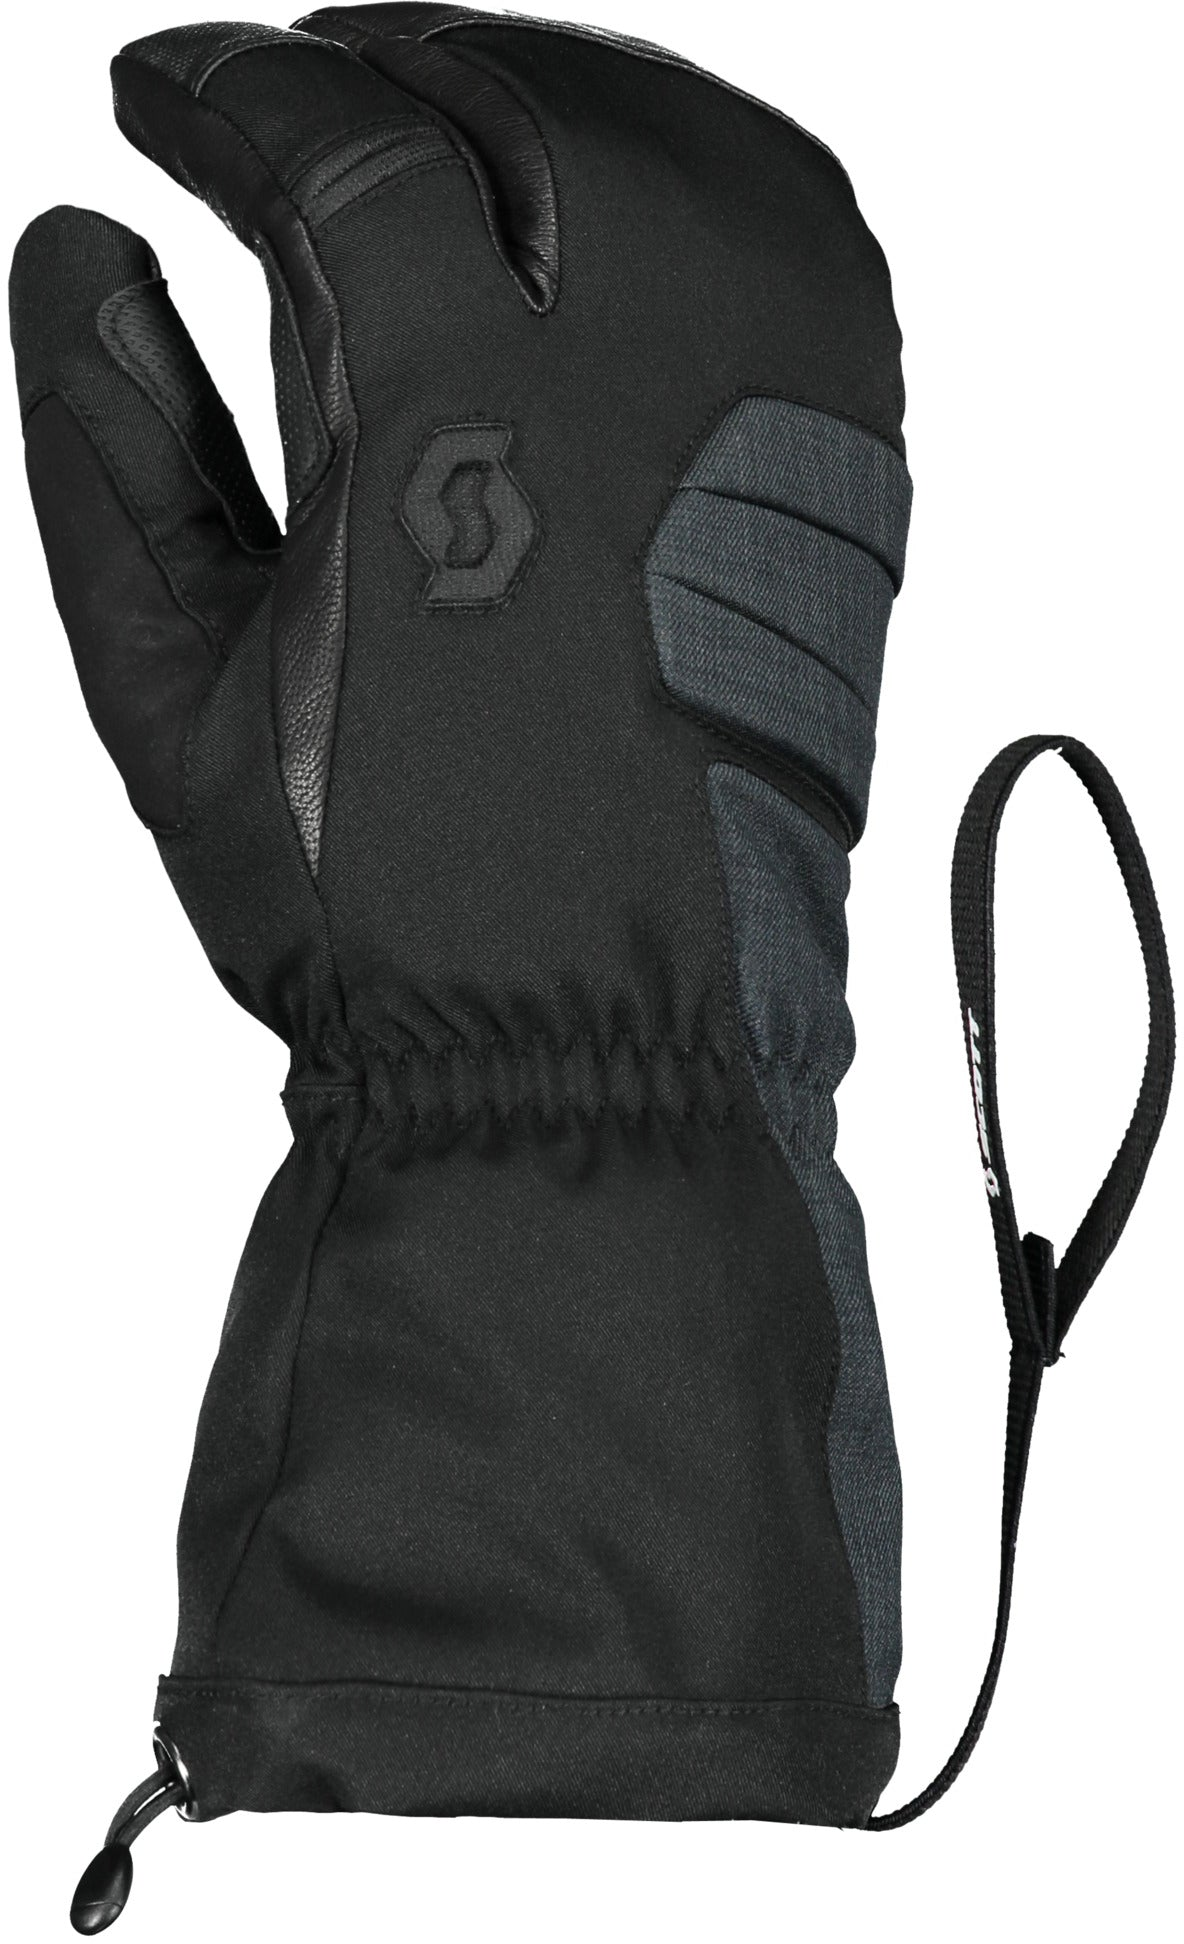 Scott - Ultimate Premium GTX Mitts